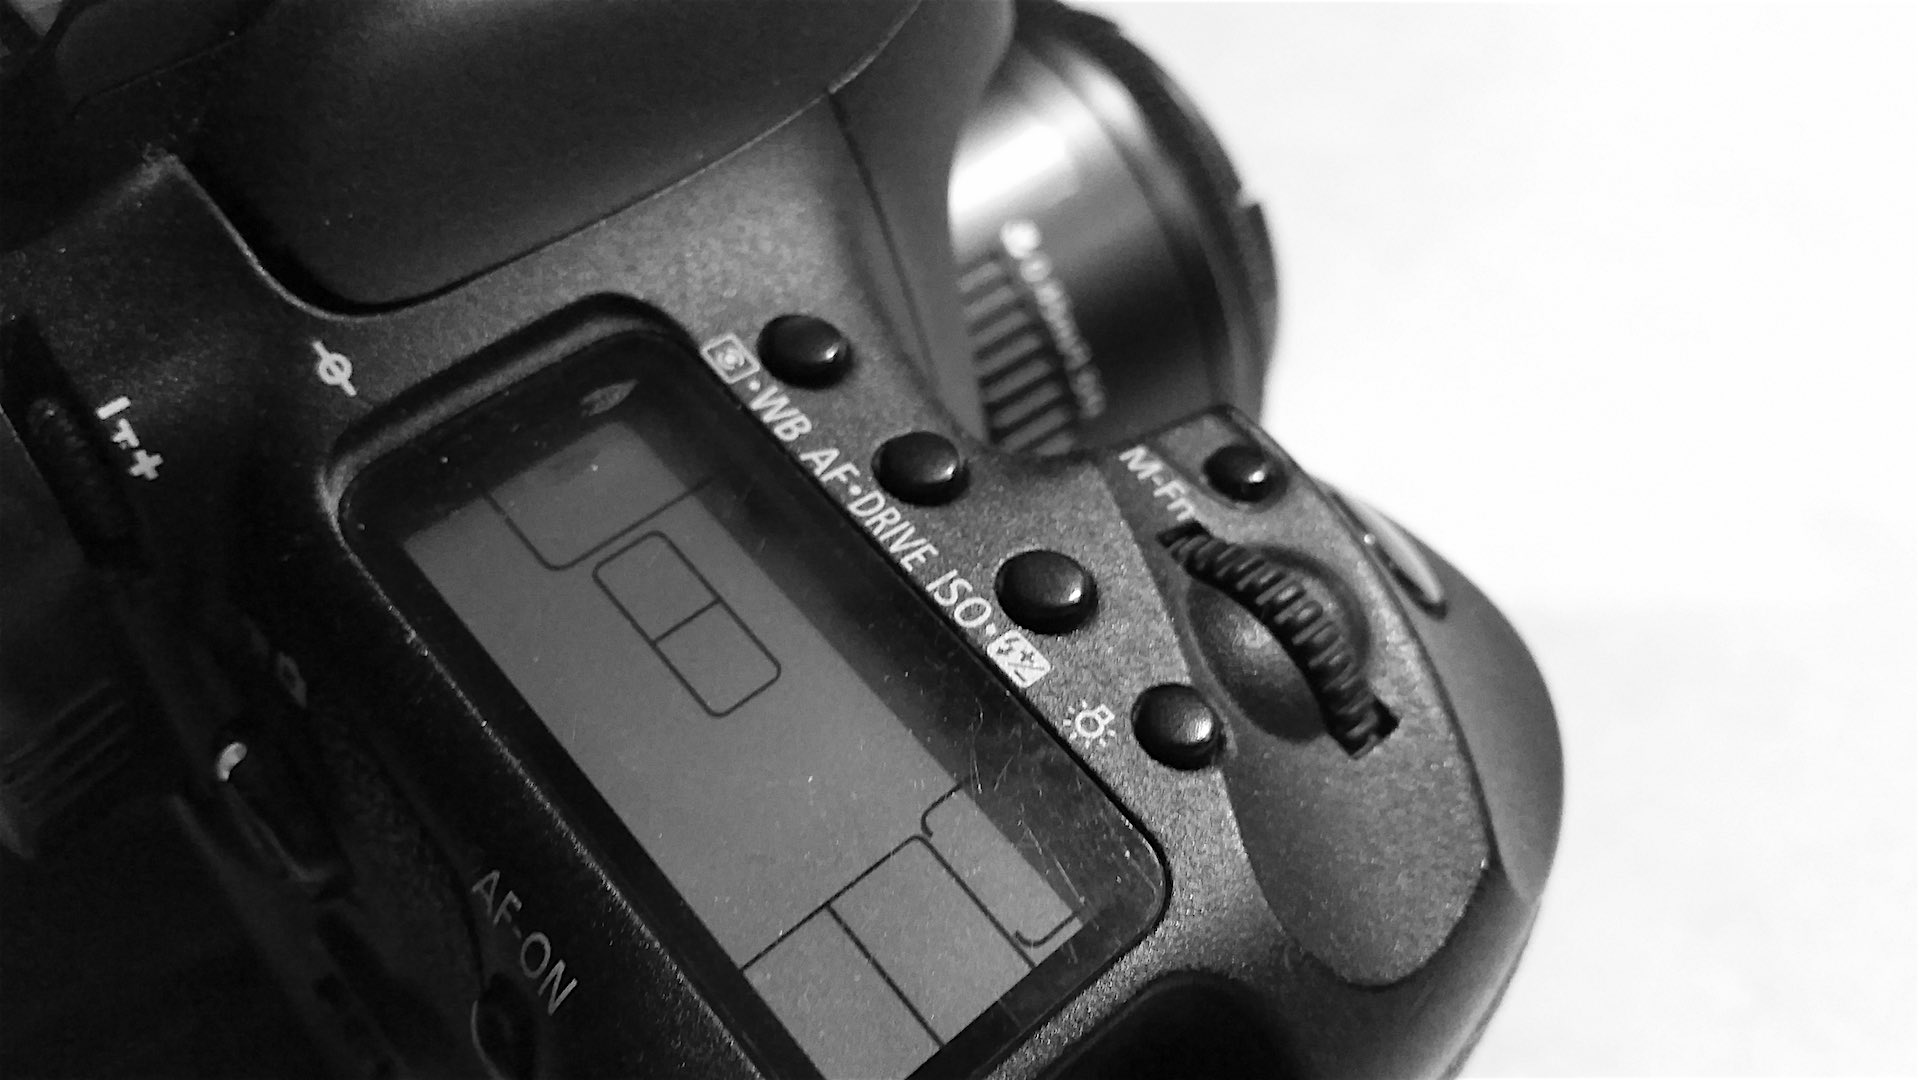 Do you know what all the buttons on your camera do?